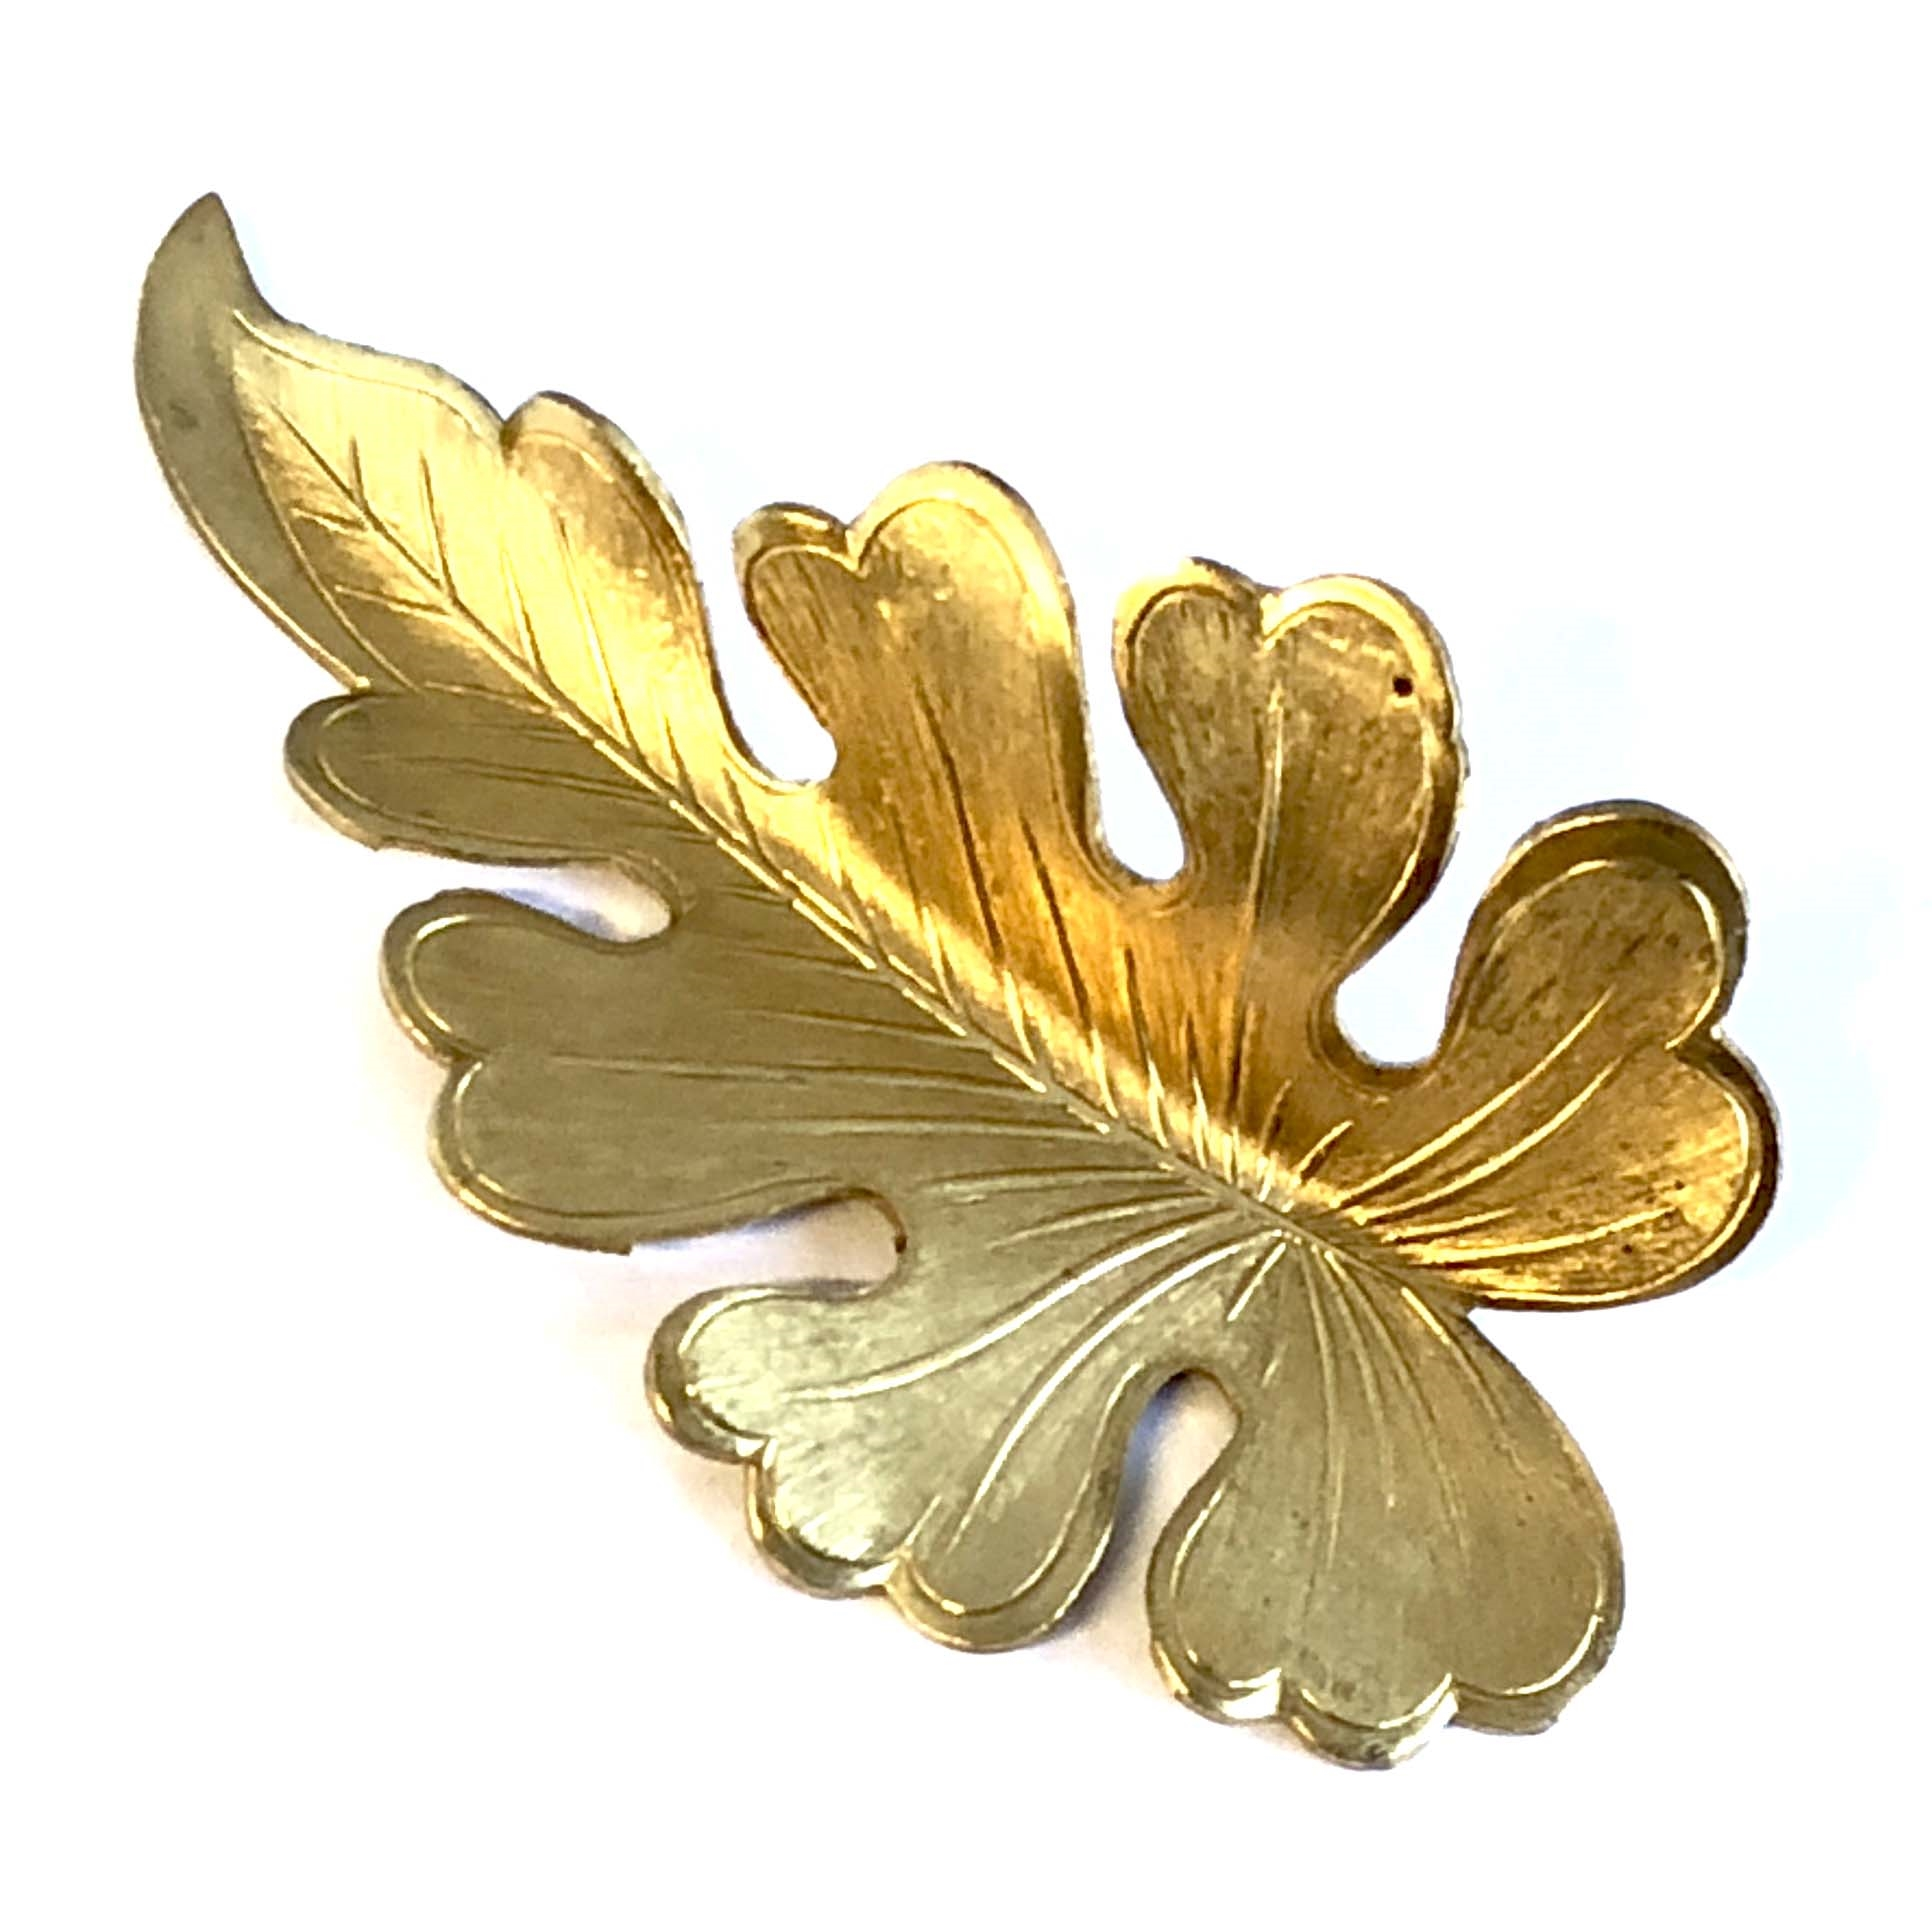 brass leaves, leaf stampings, raw brass, 08075, jewelry making supplies, vintage jewelry supplies, large leaf stampings, bsueboutiques, nickel free jewelry supplies, US made, lobed oak leaf, curved leaf, dapt leaf stamping